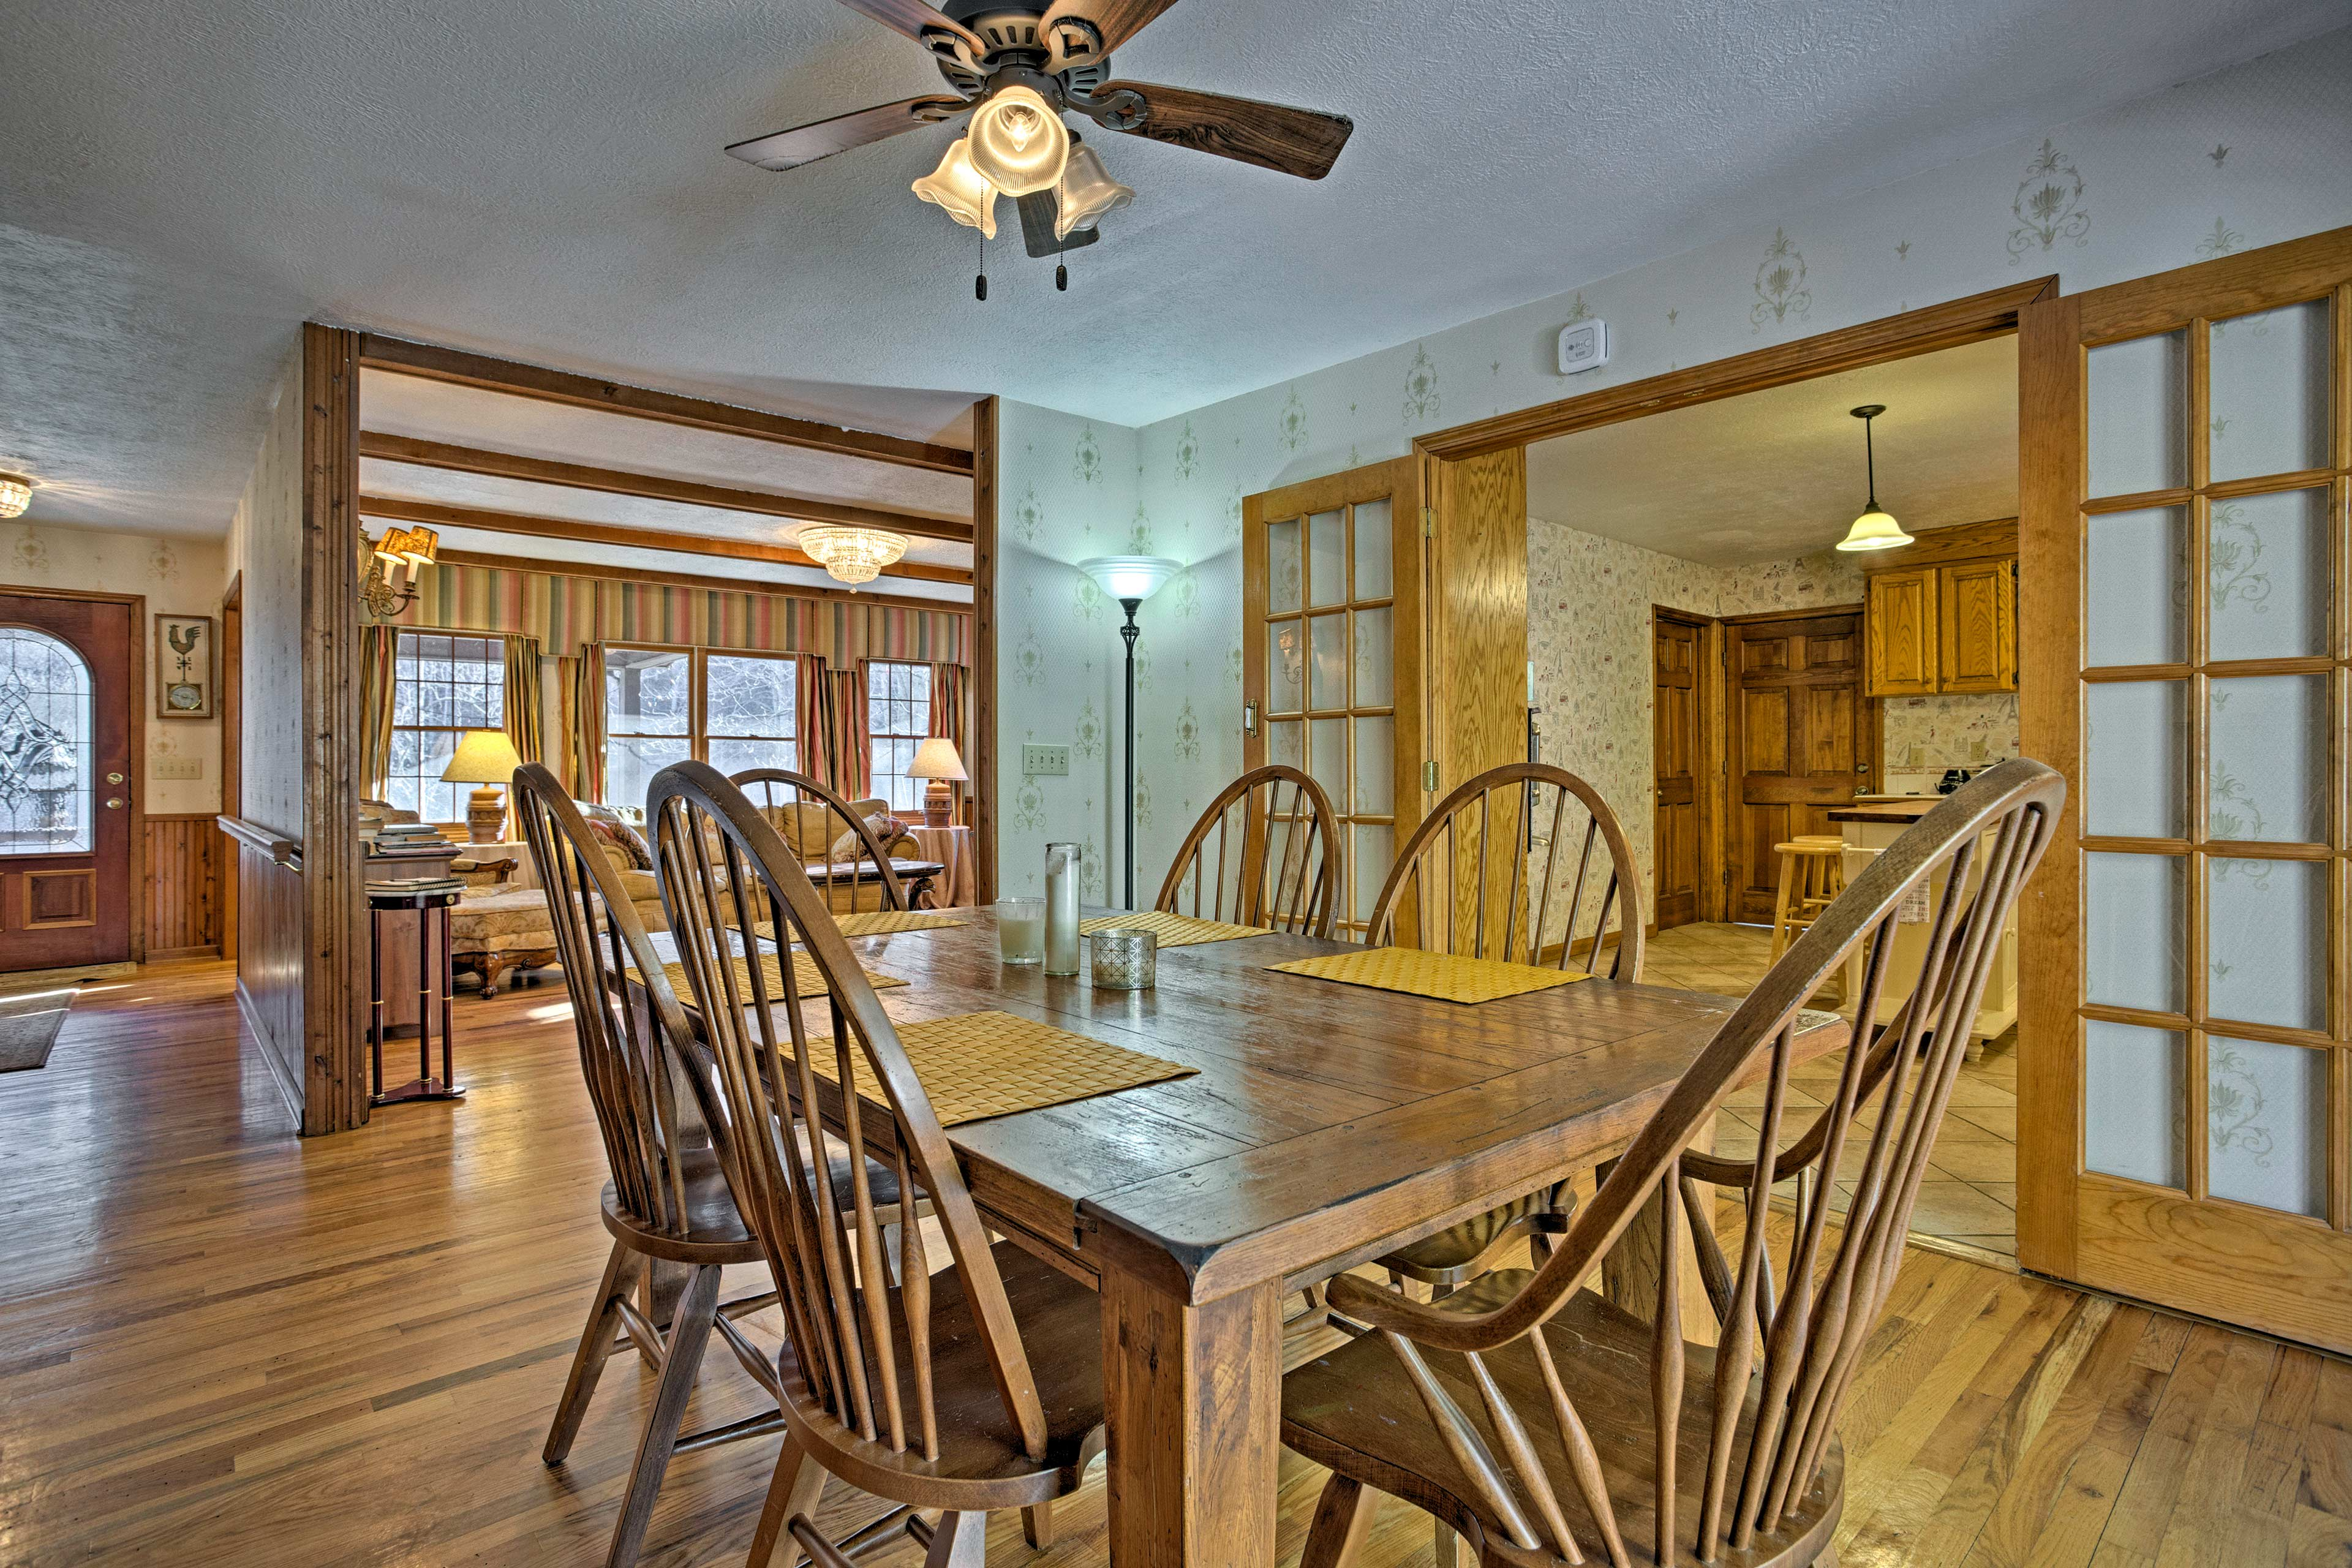 Savor meals around the 6-person dining table.